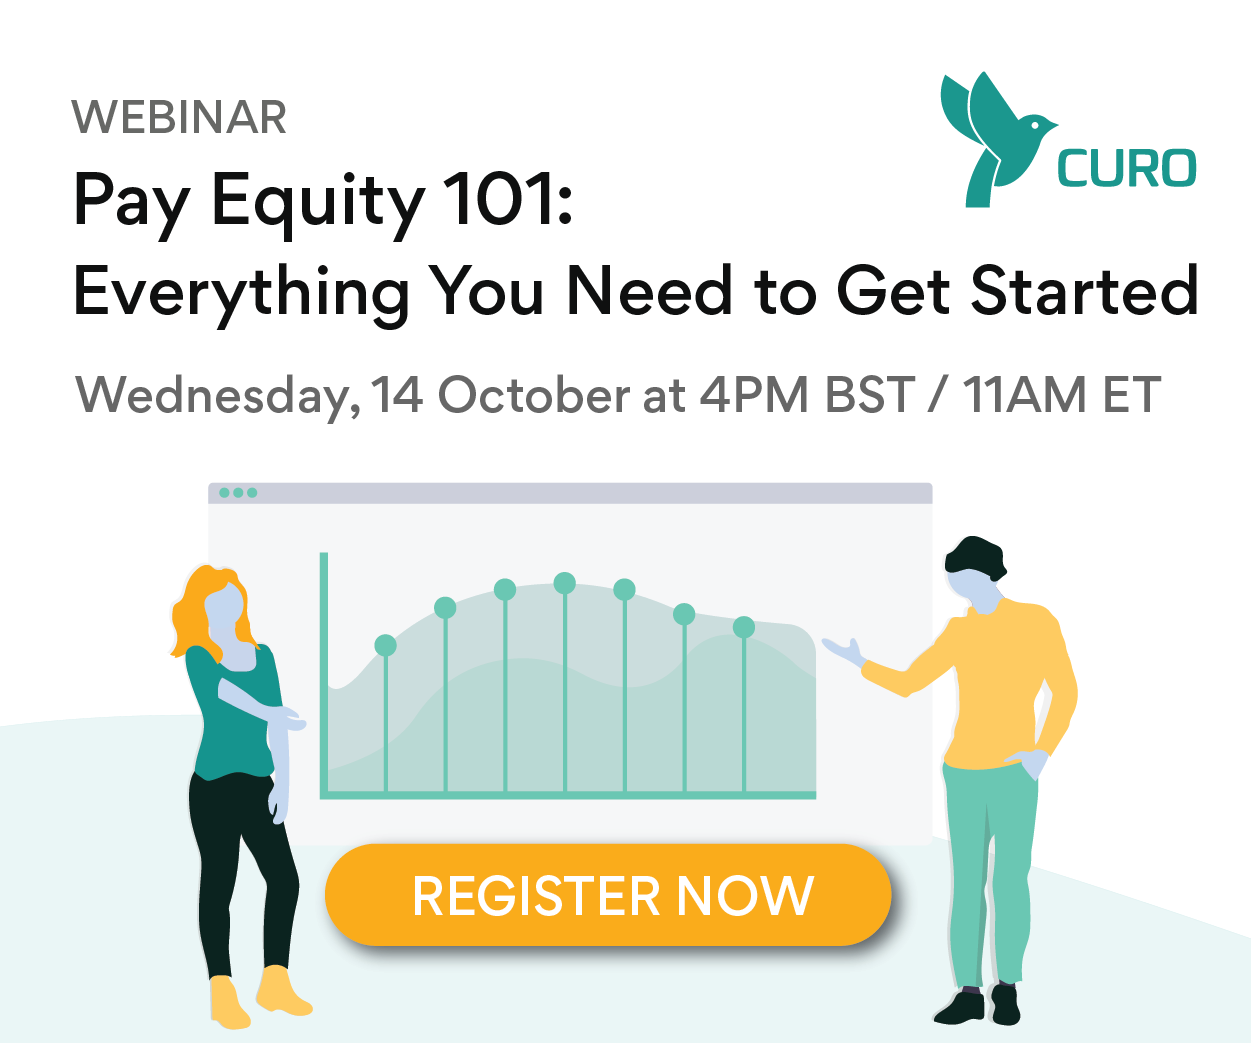 Pay Equity 101: Everything you need to get started